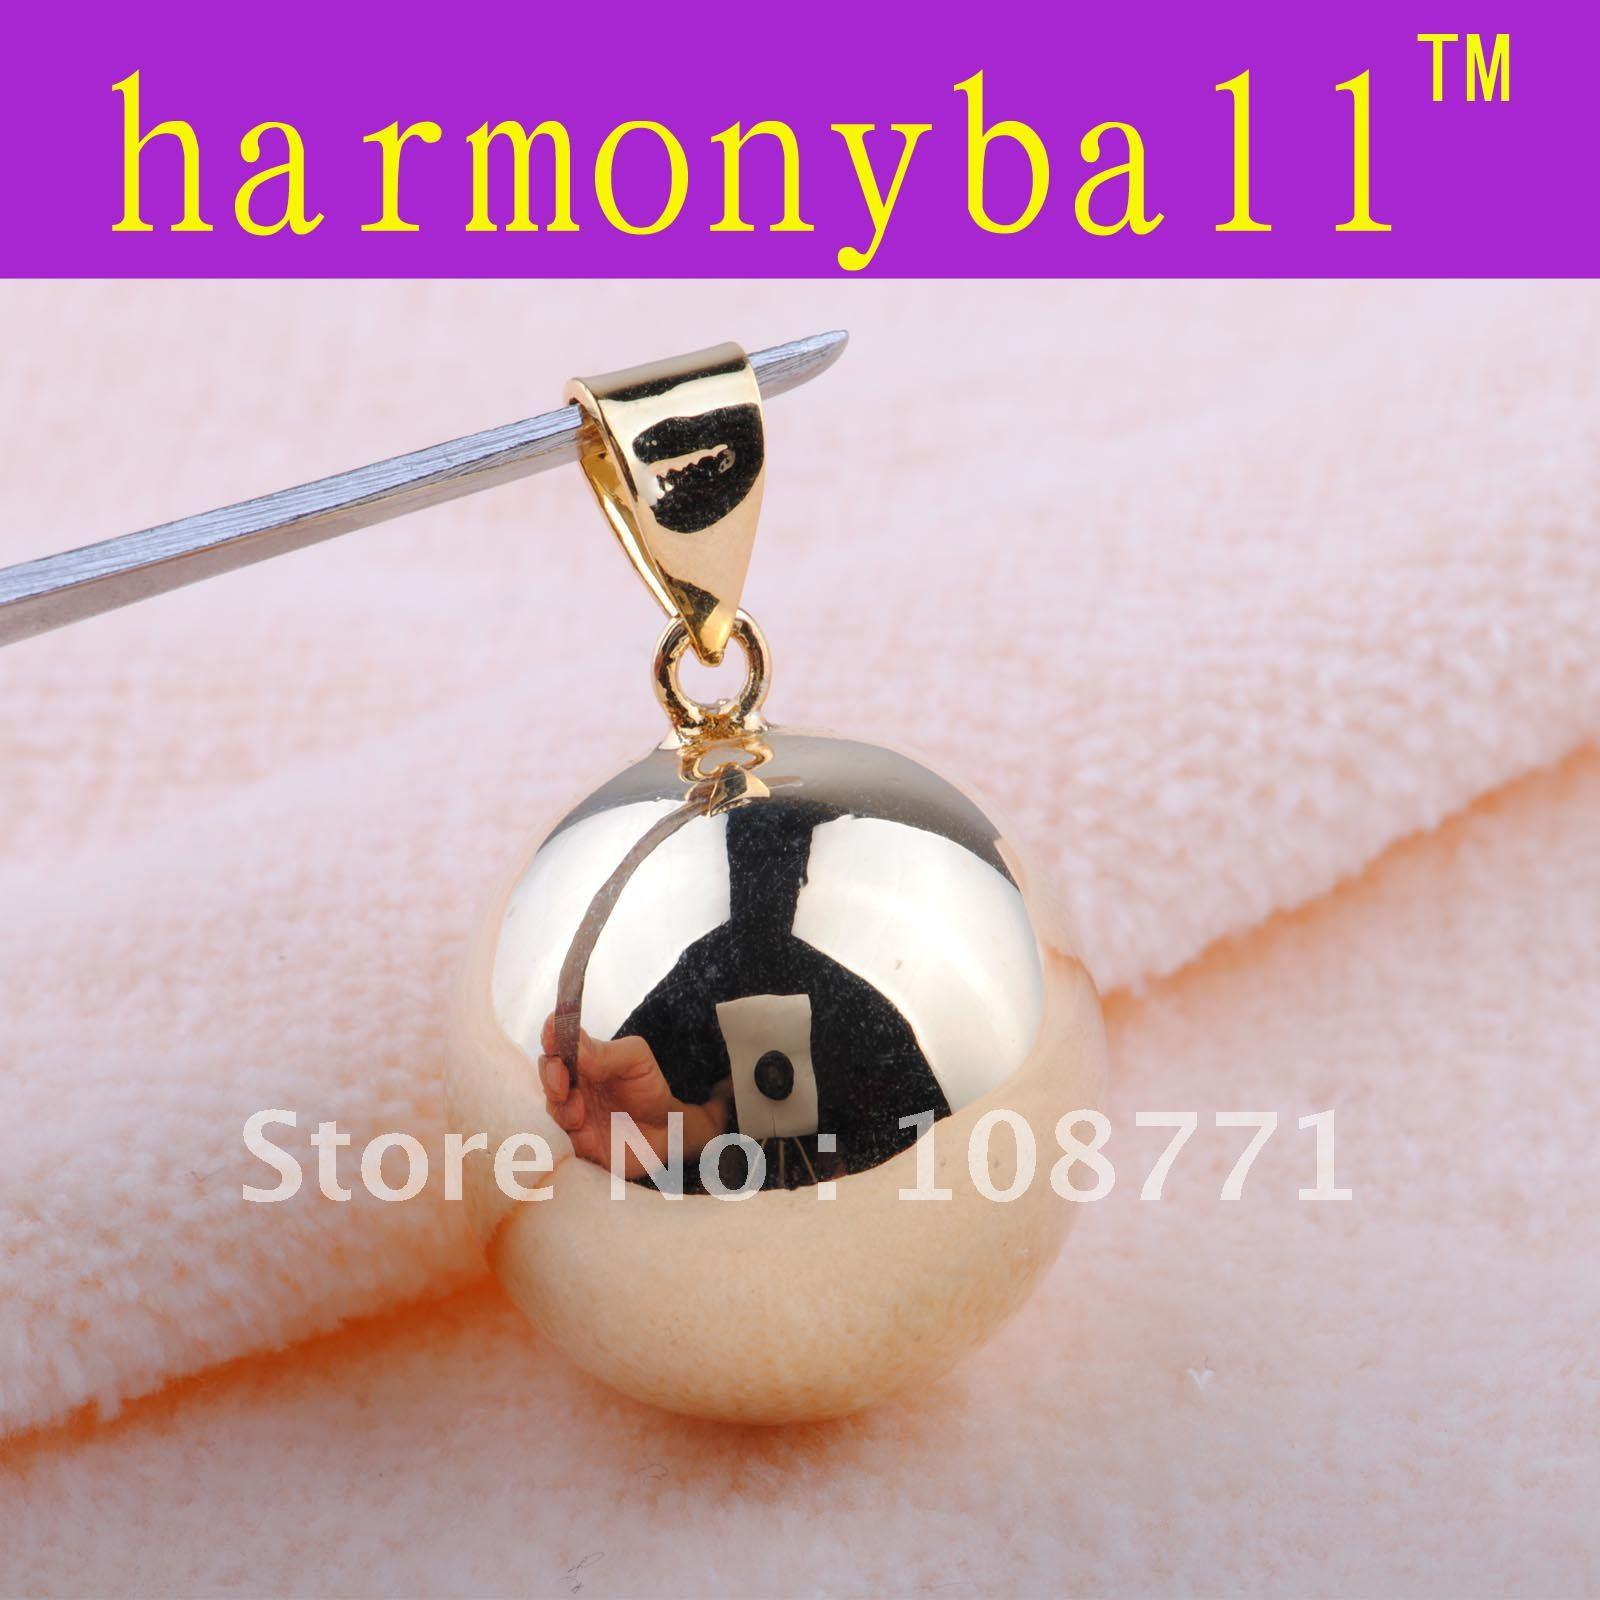 2018 gm017 18k gf gold pendant harmony ball bell ringing chime sound 2018 gm017 18k gf gold pendant harmony ball bell ringing chime sound of angel pregnant from elegant1688 854 dhgate aloadofball Image collections